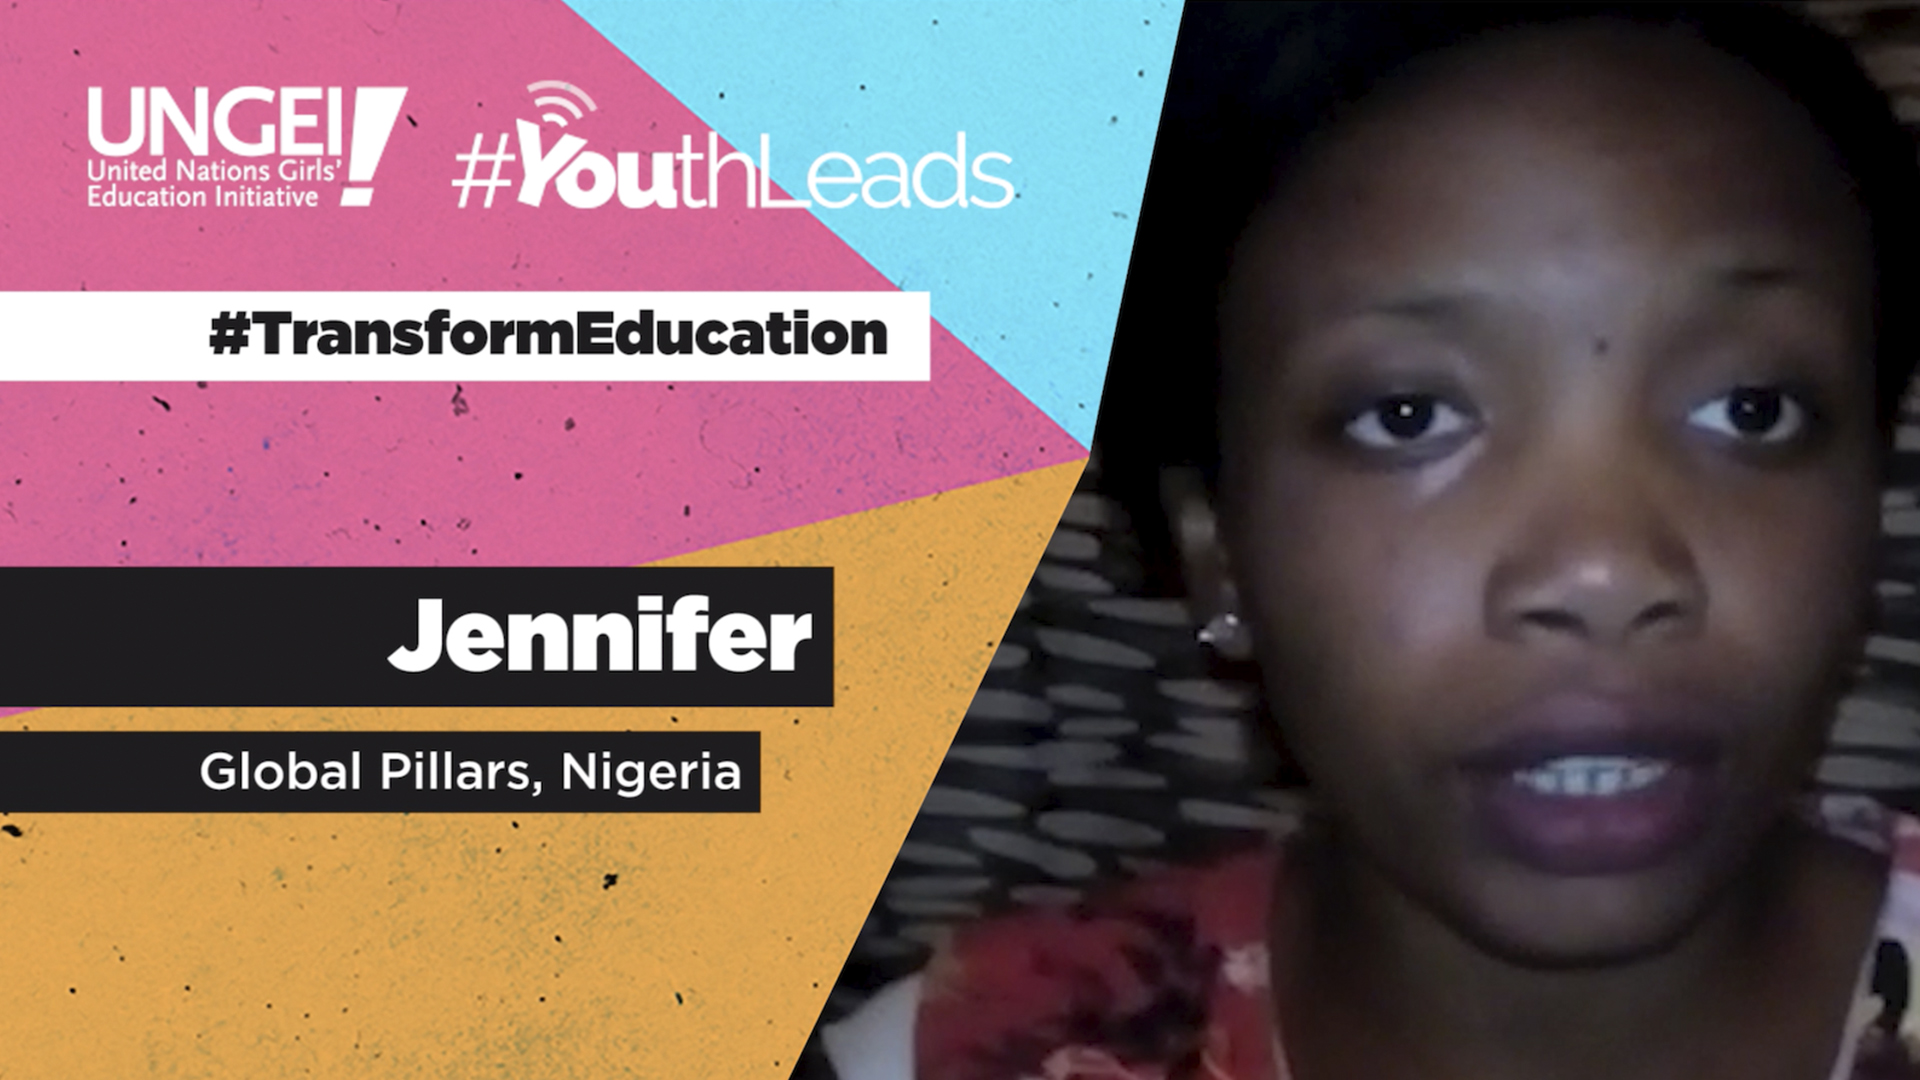 Jennifer, Global Pillars, Nigeria